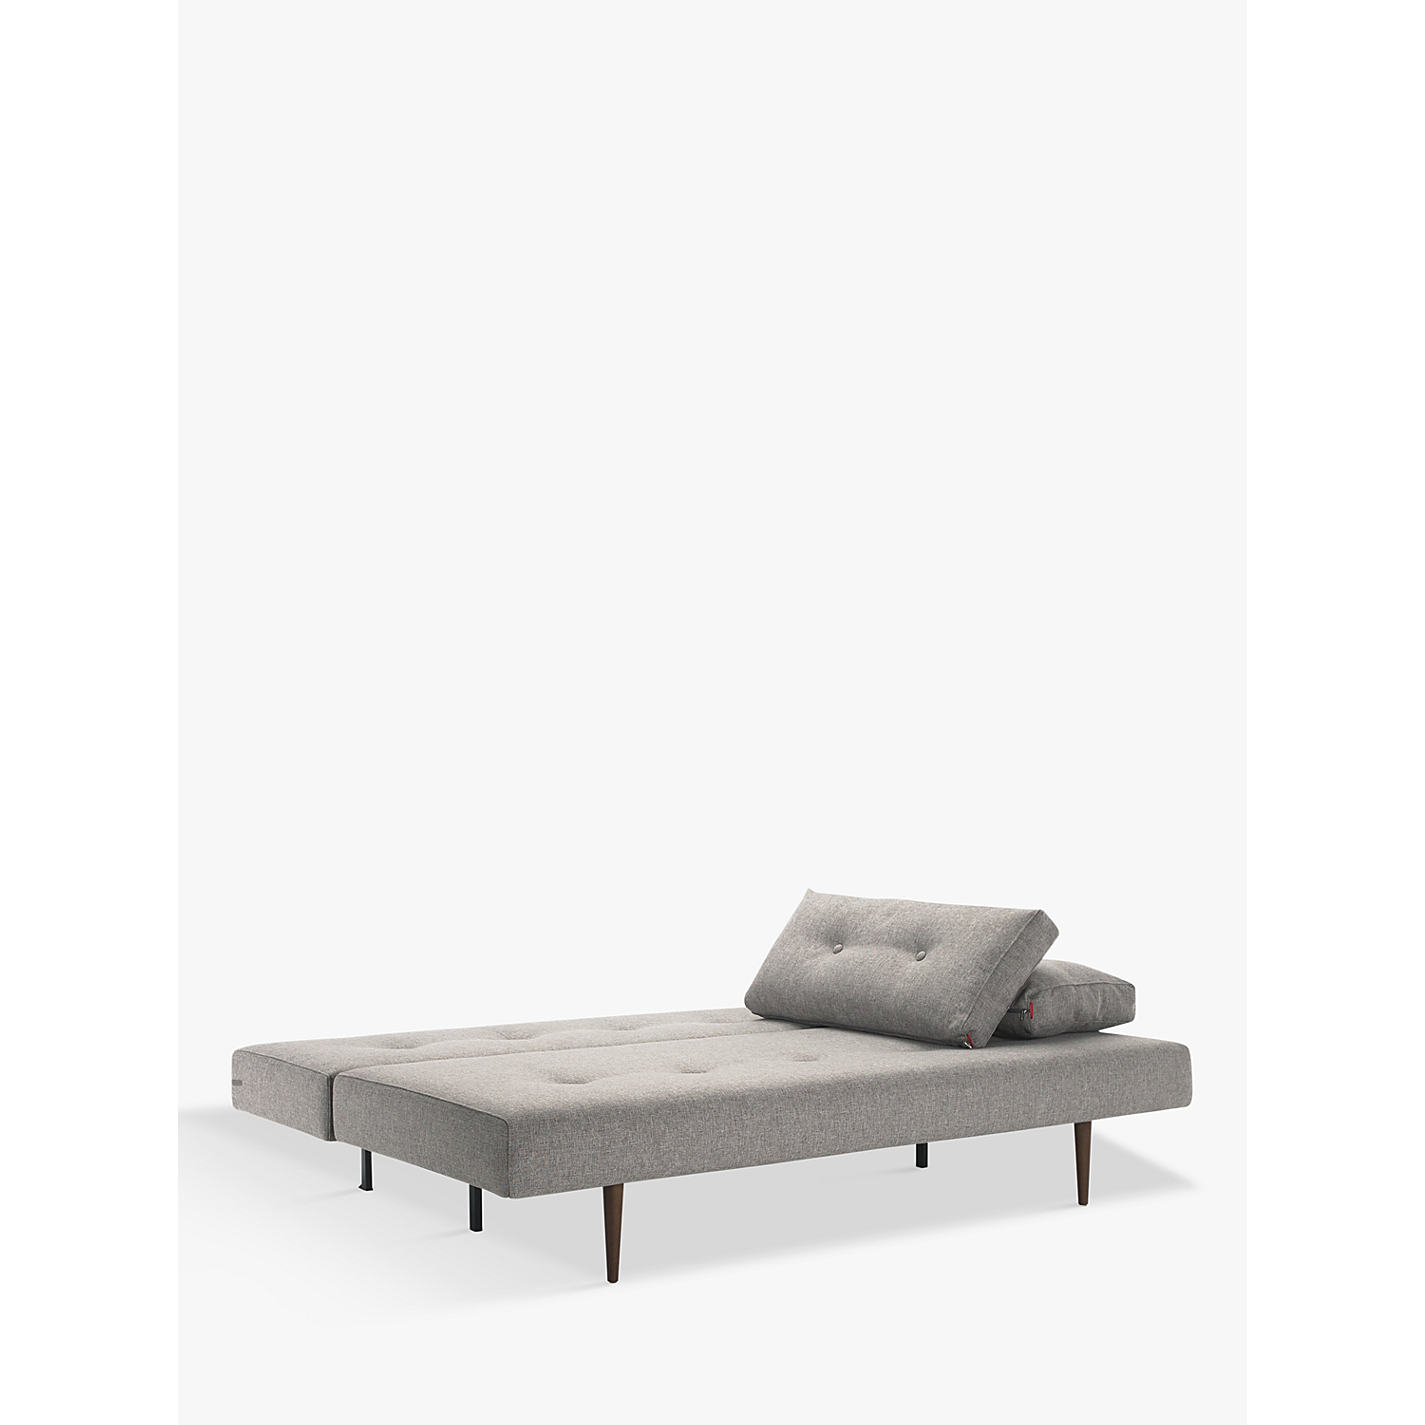 Buy Innovation Recast Sofa Bed With Pocket Sprung Mattress Dark  ~ Where Can I Buy A Mattress For A Sofa Bed